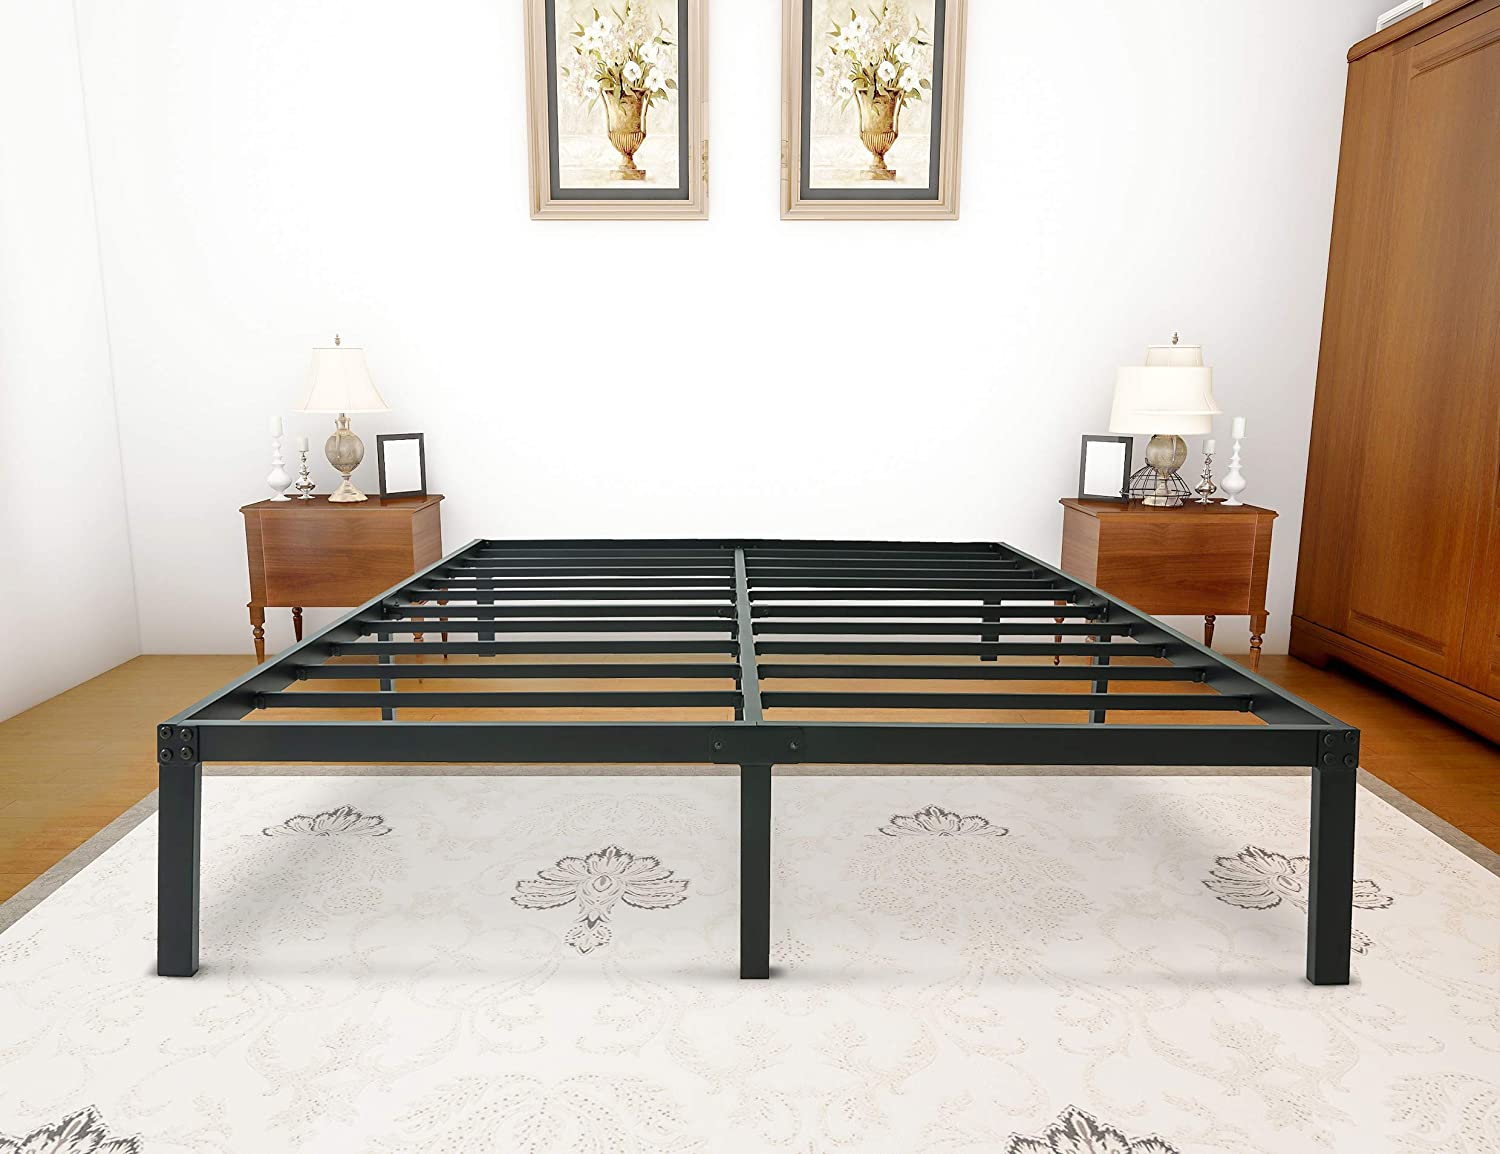 zizin Queen Size Bed Frame Platform Base 14 Inch Heavy Duty Metal Beds Frames Easy Assembly Noise-Free No Box Spring Needed Queen